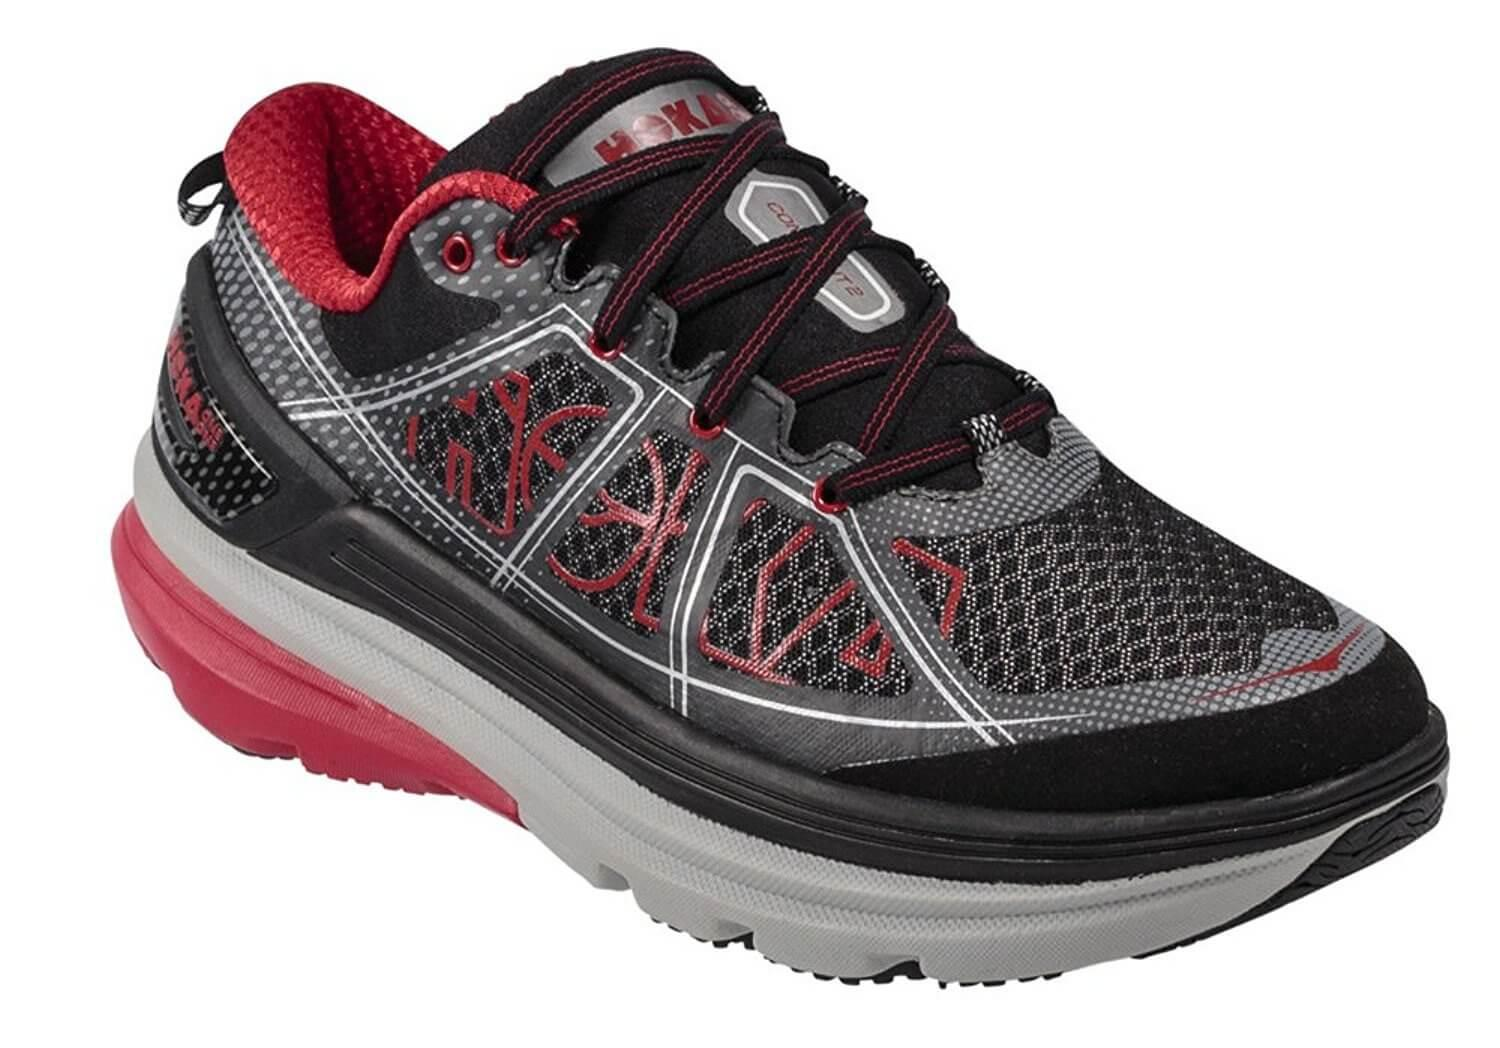 Hoka One One Constant 2 Fully Reviewed for Quality 1